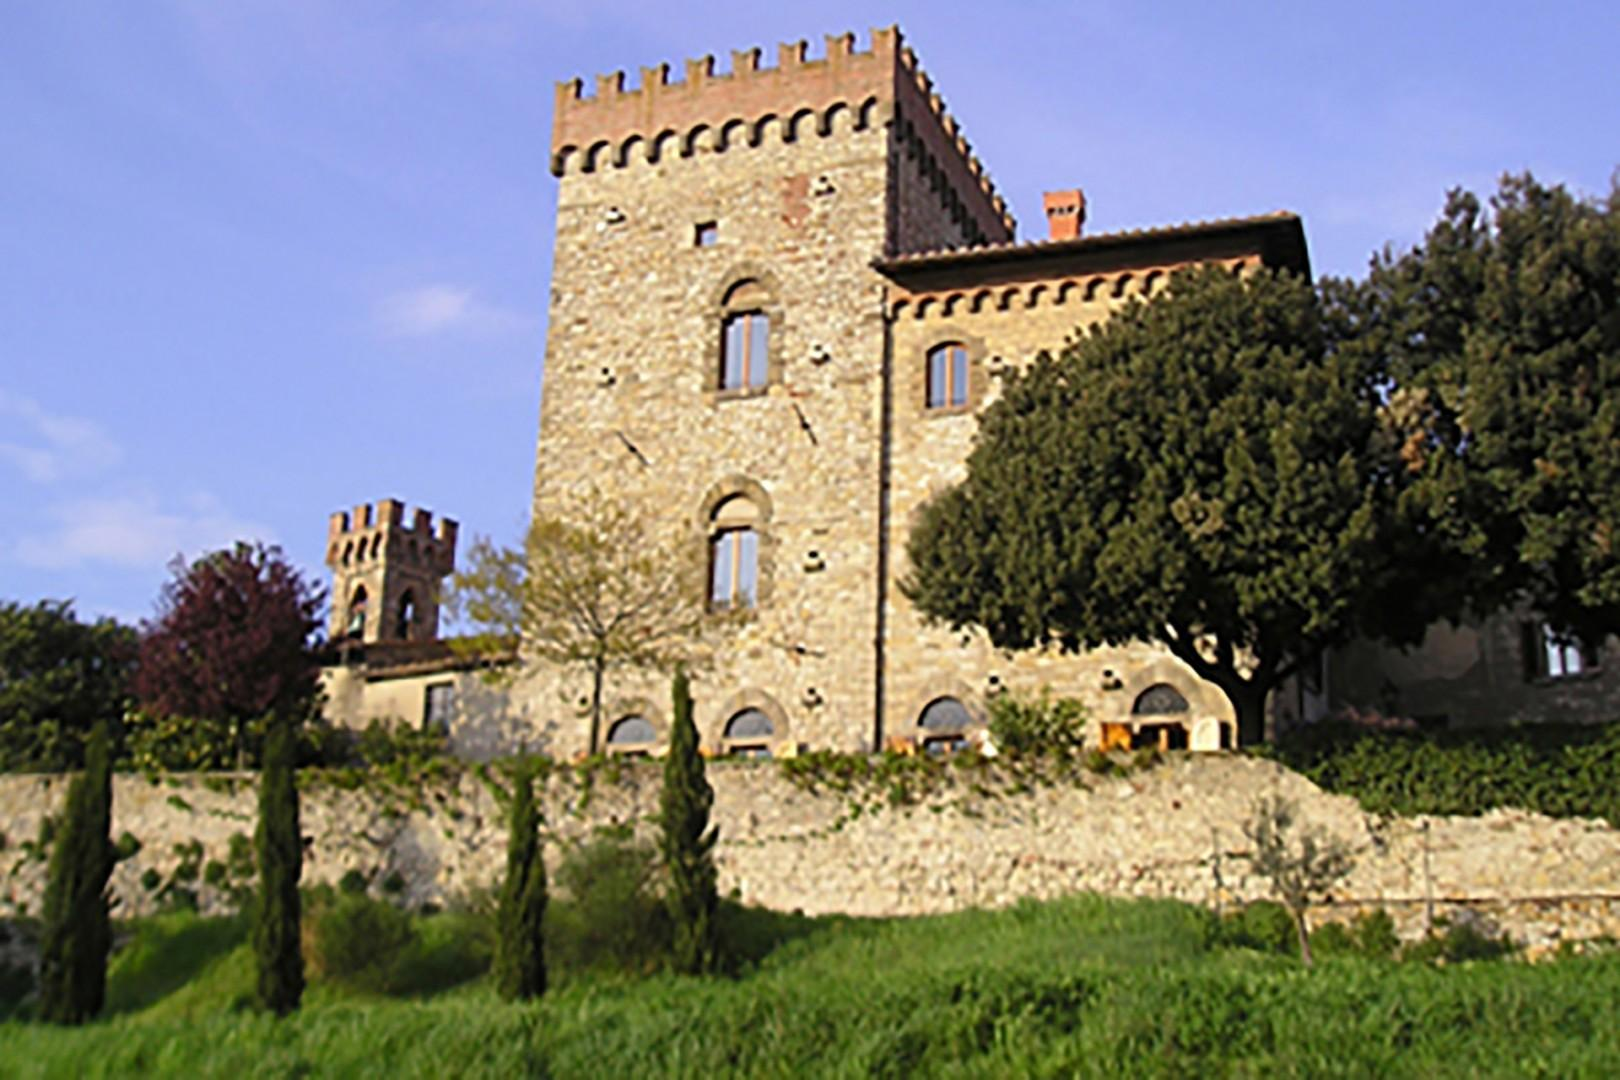 Volognano Castle has tours and wine tastings.